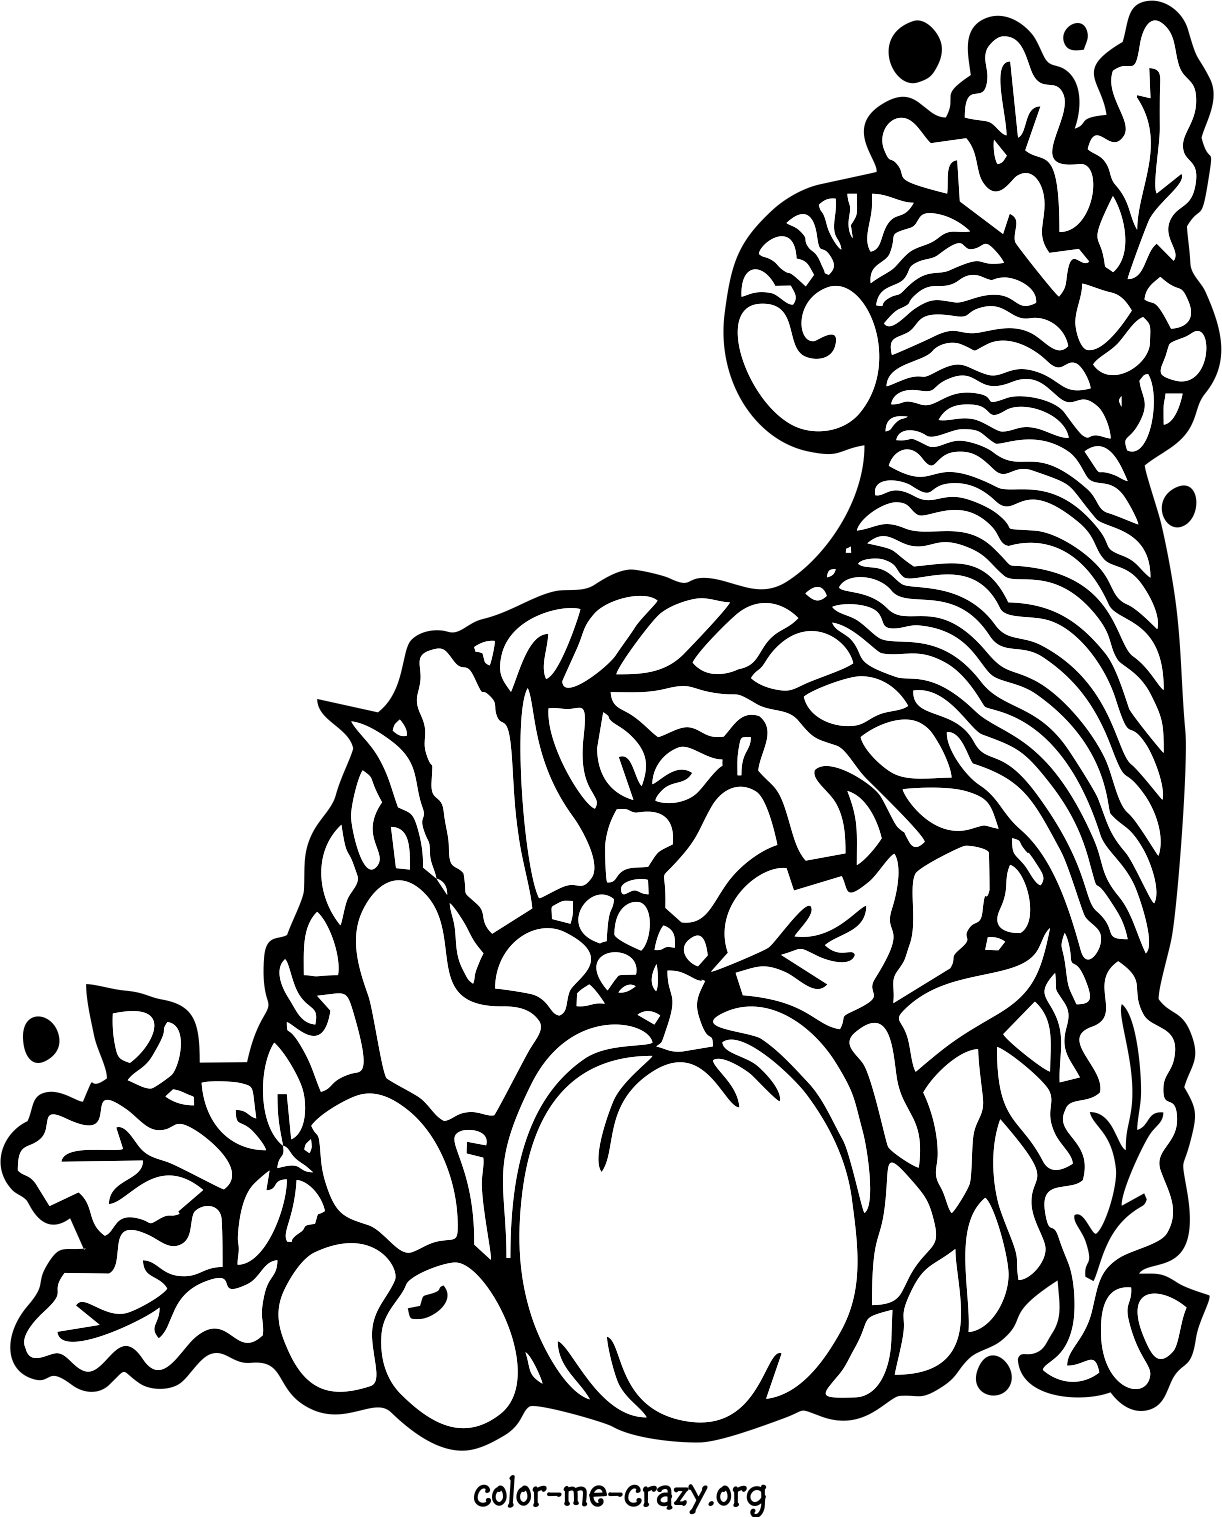 Colormecrazy Thanksgiving Coloring Pages